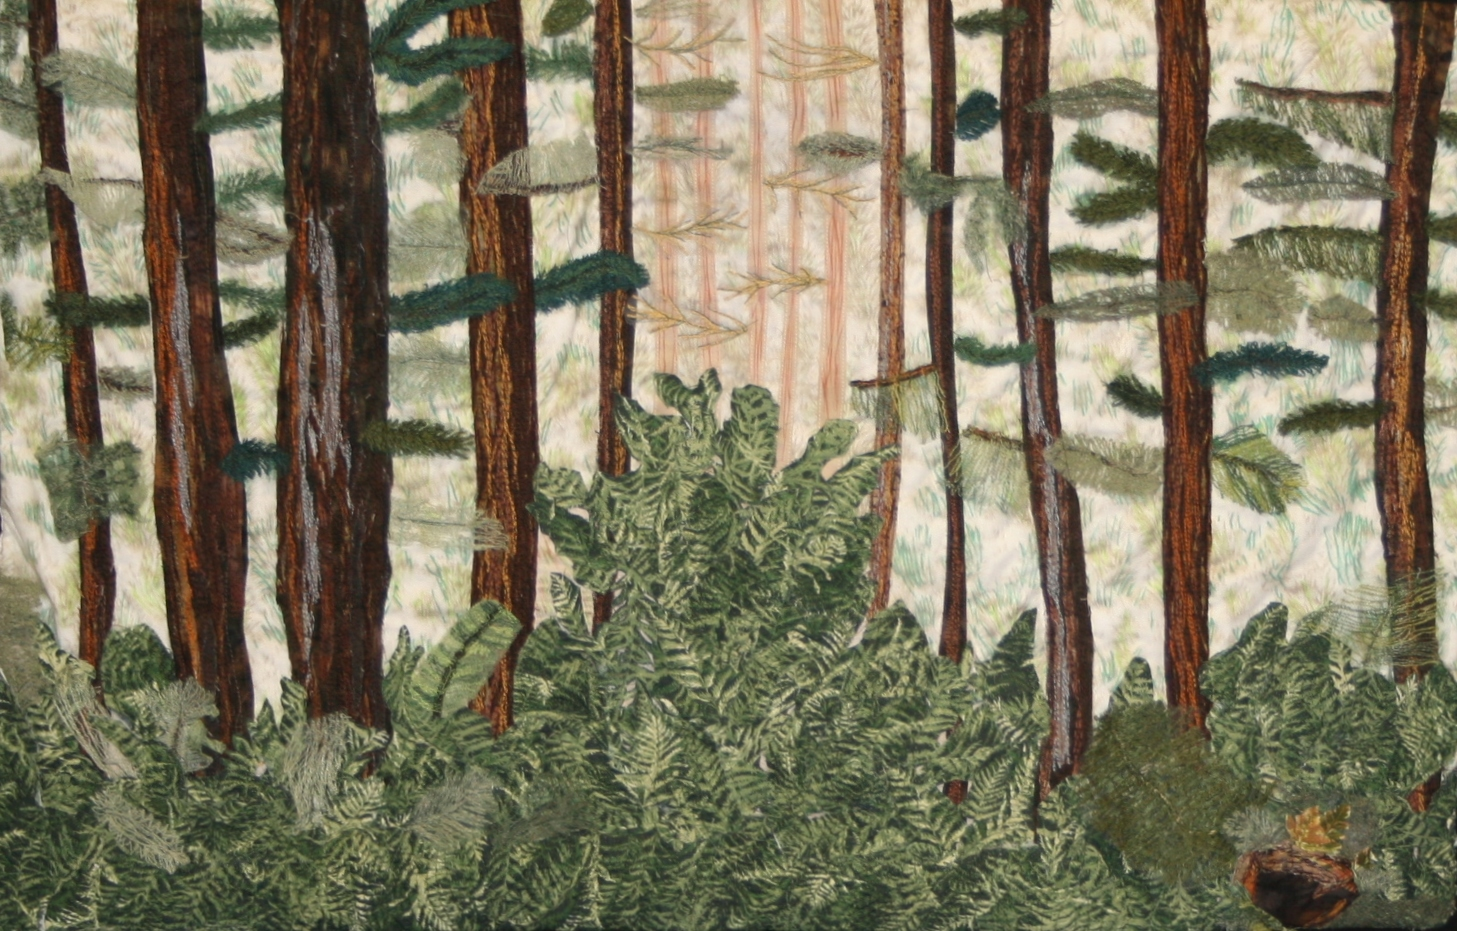 download quilting from forest patterns com connectingthreads quilt pattern kootenai